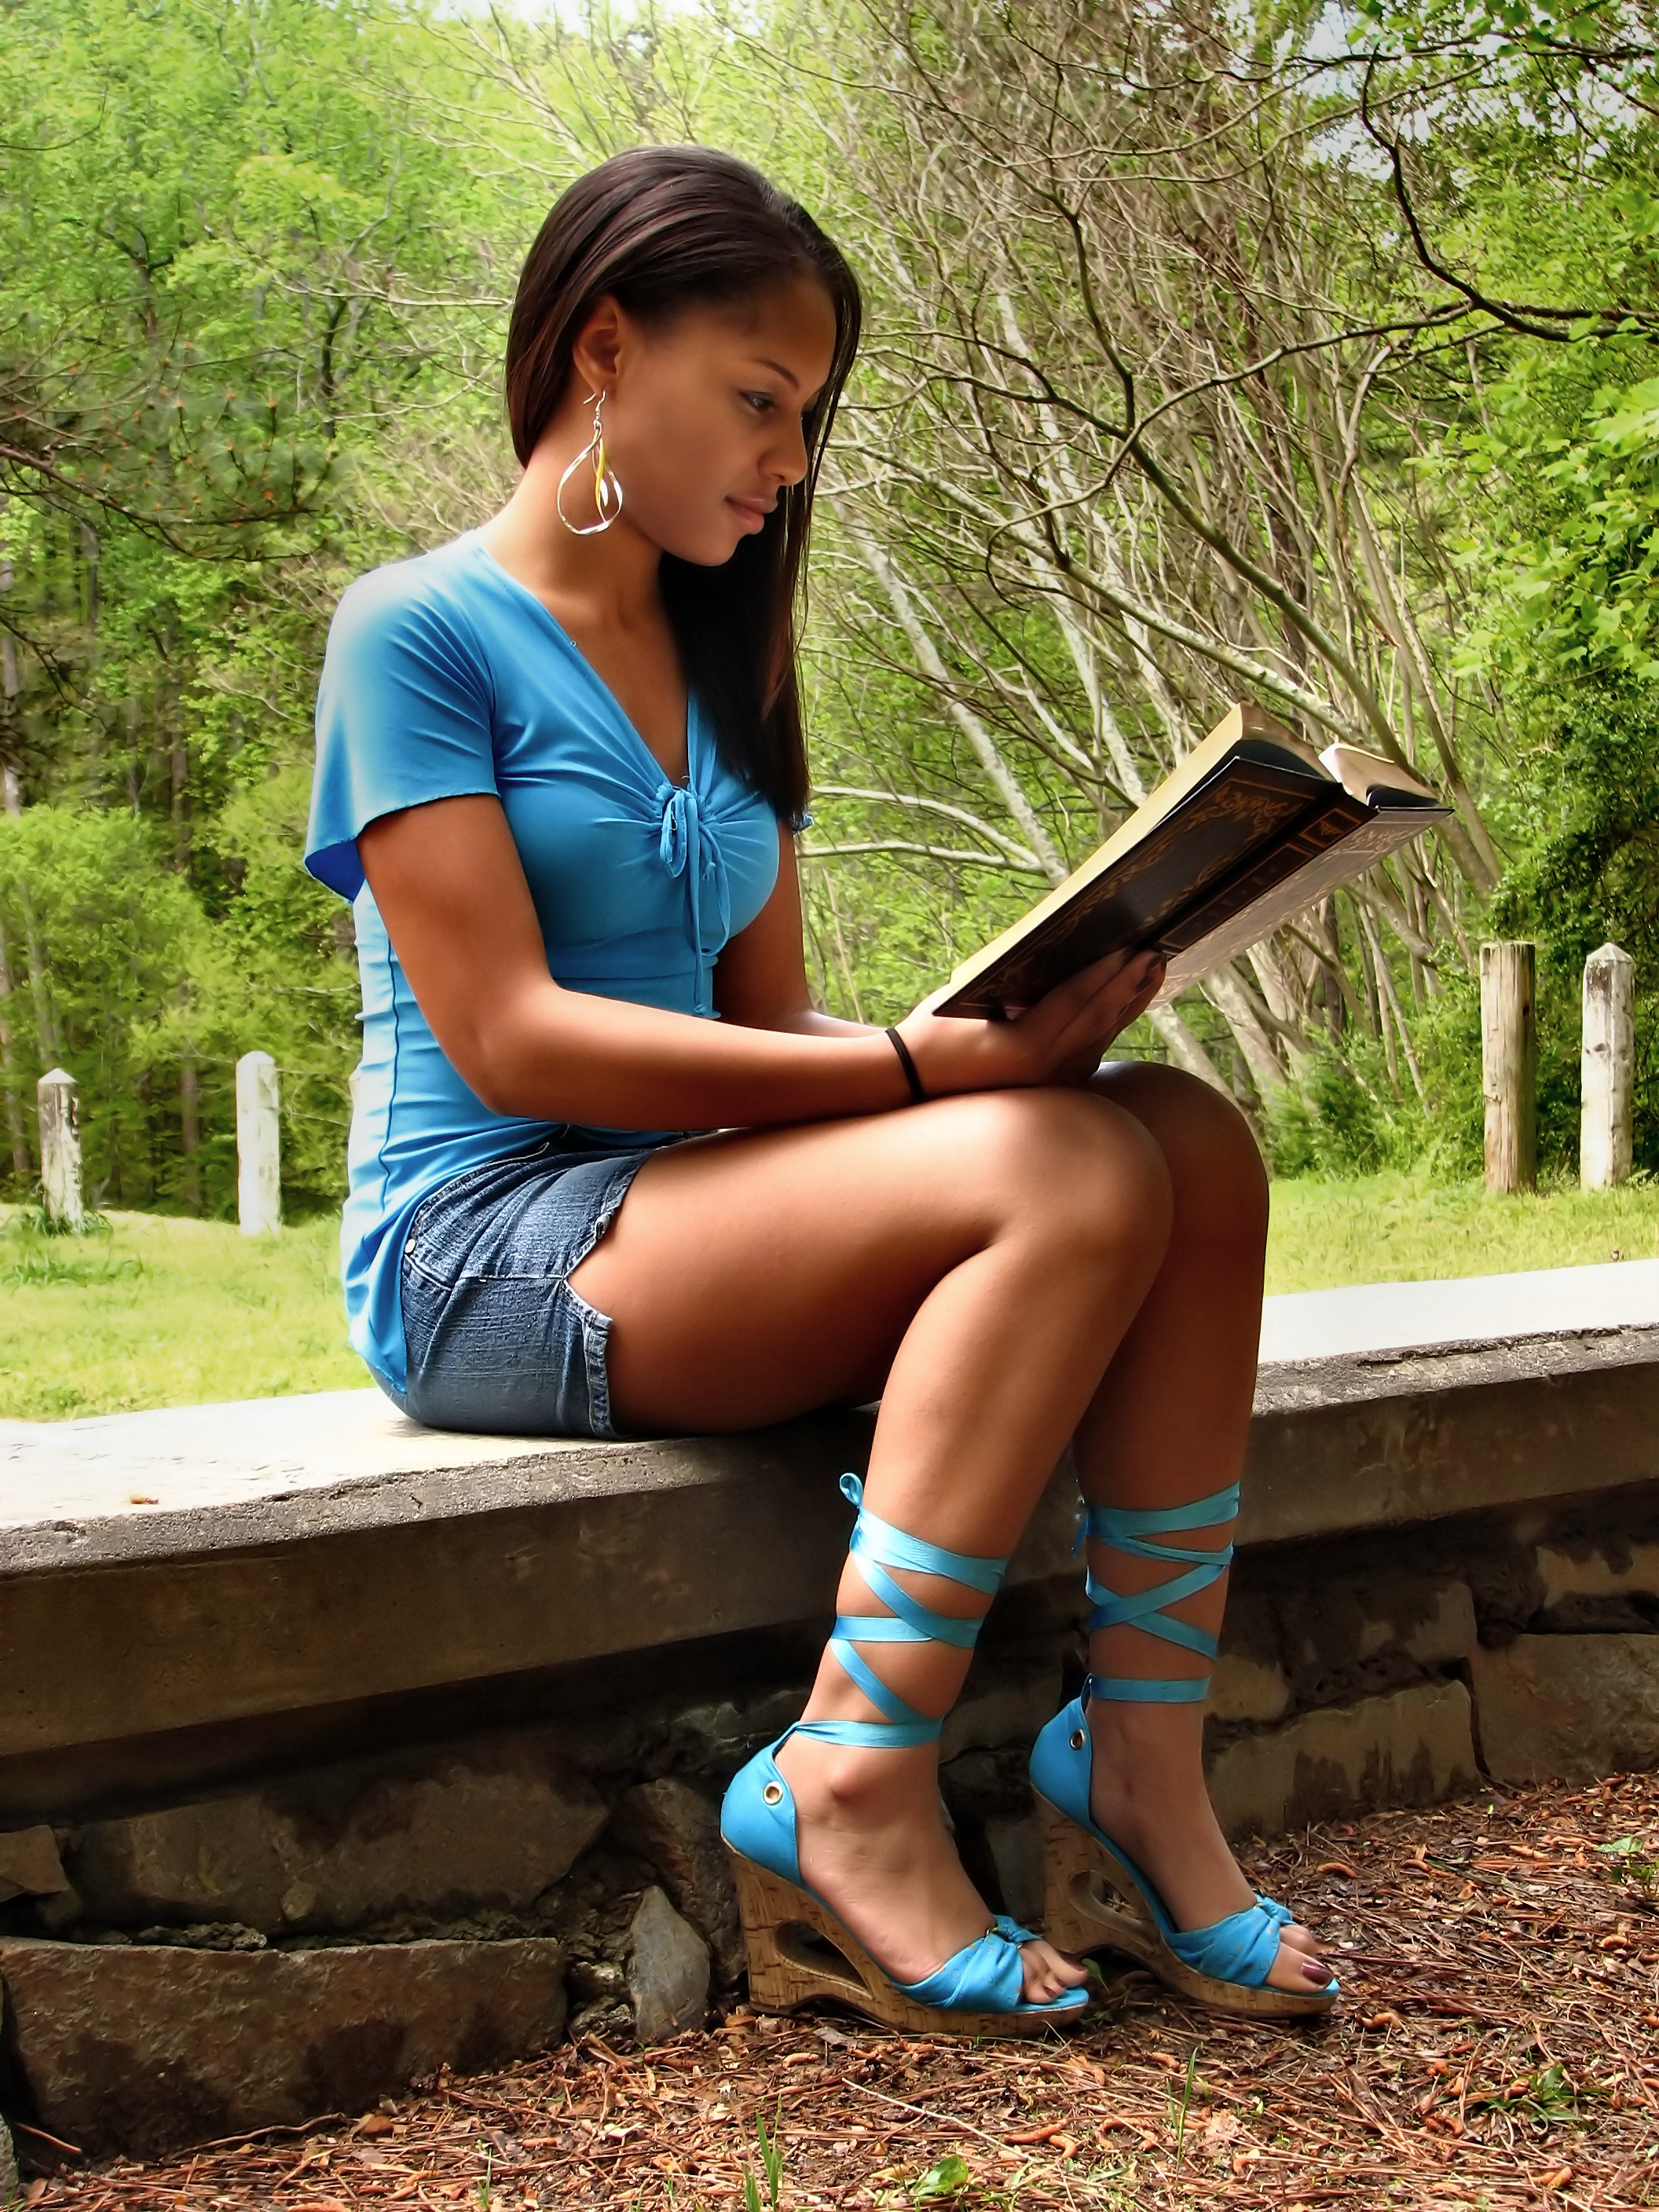 A Beautiful Teen Girl Reading A Book Recreation Reading Stone Trees